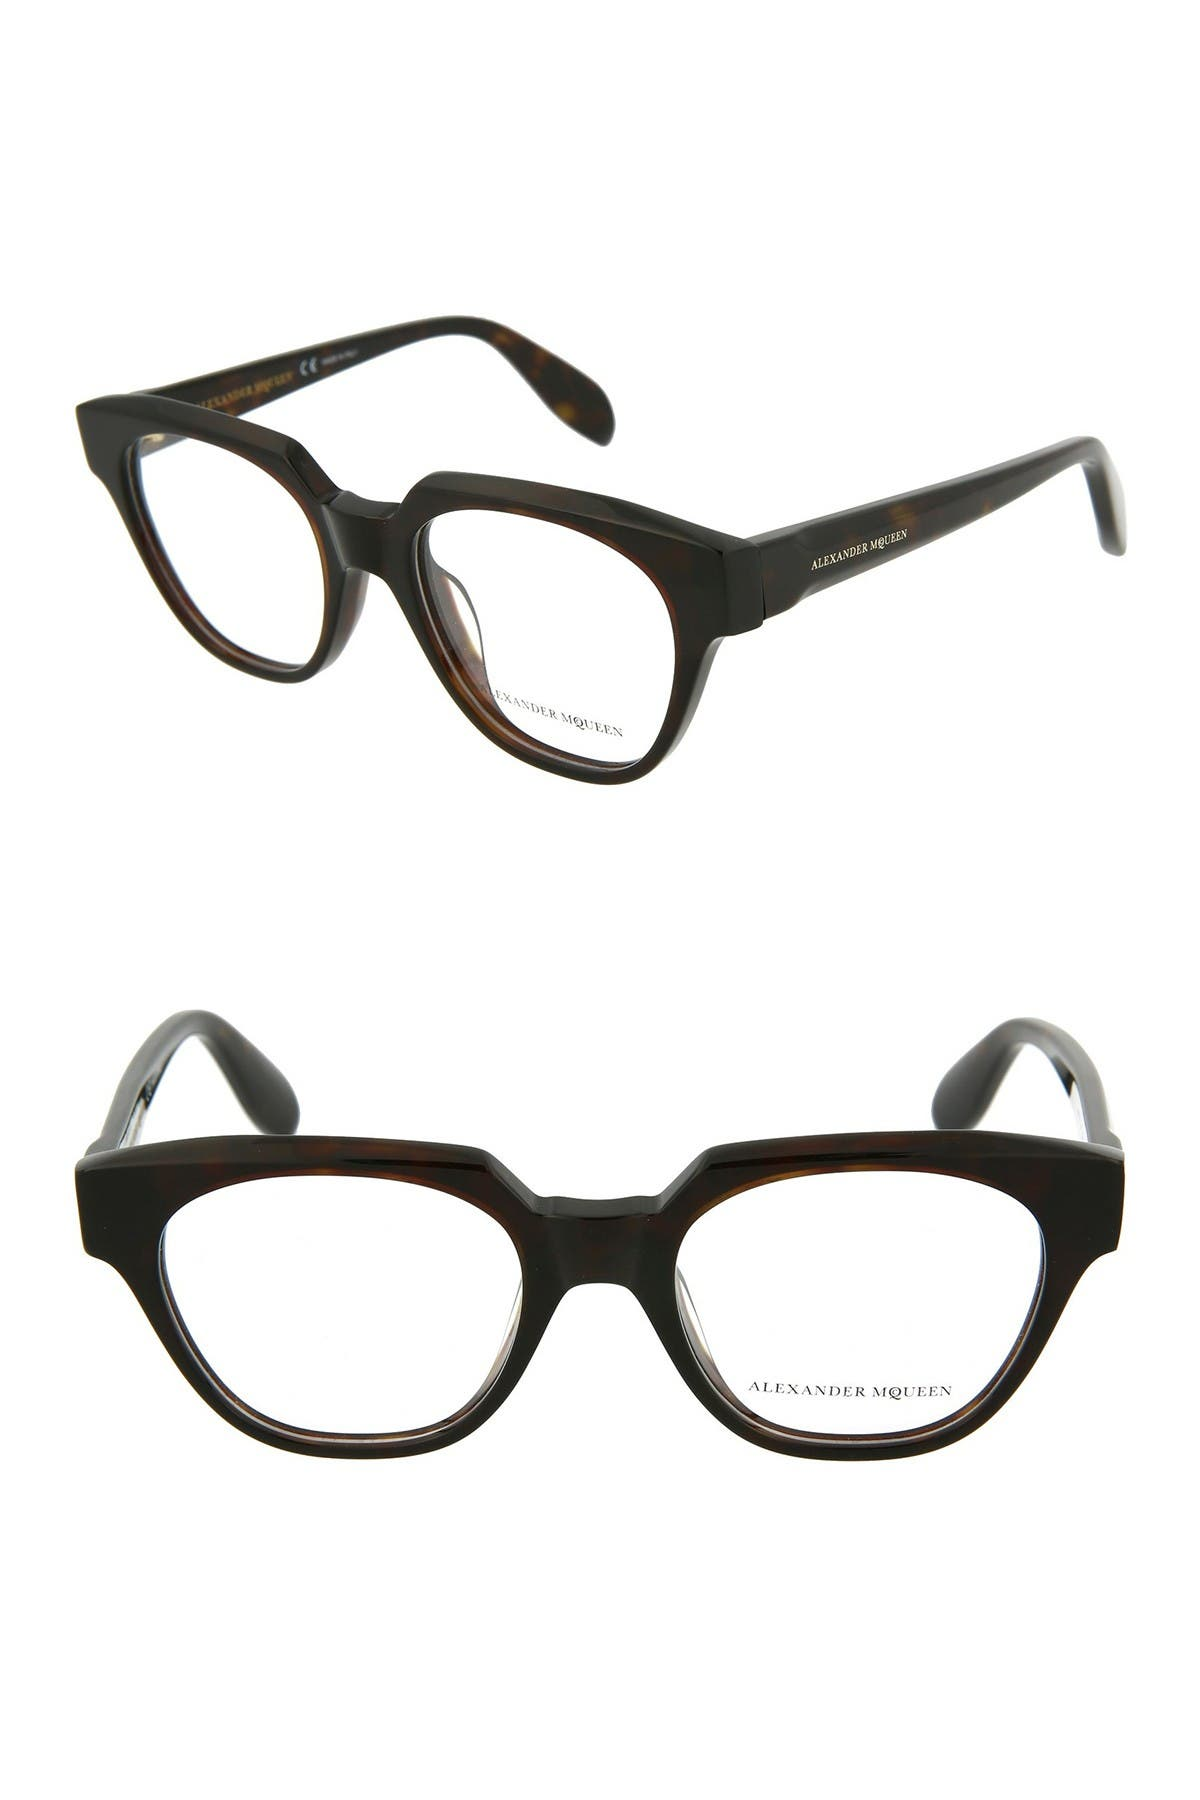 Image of Alexander McQueen 49mm Modified Round Optical Frames